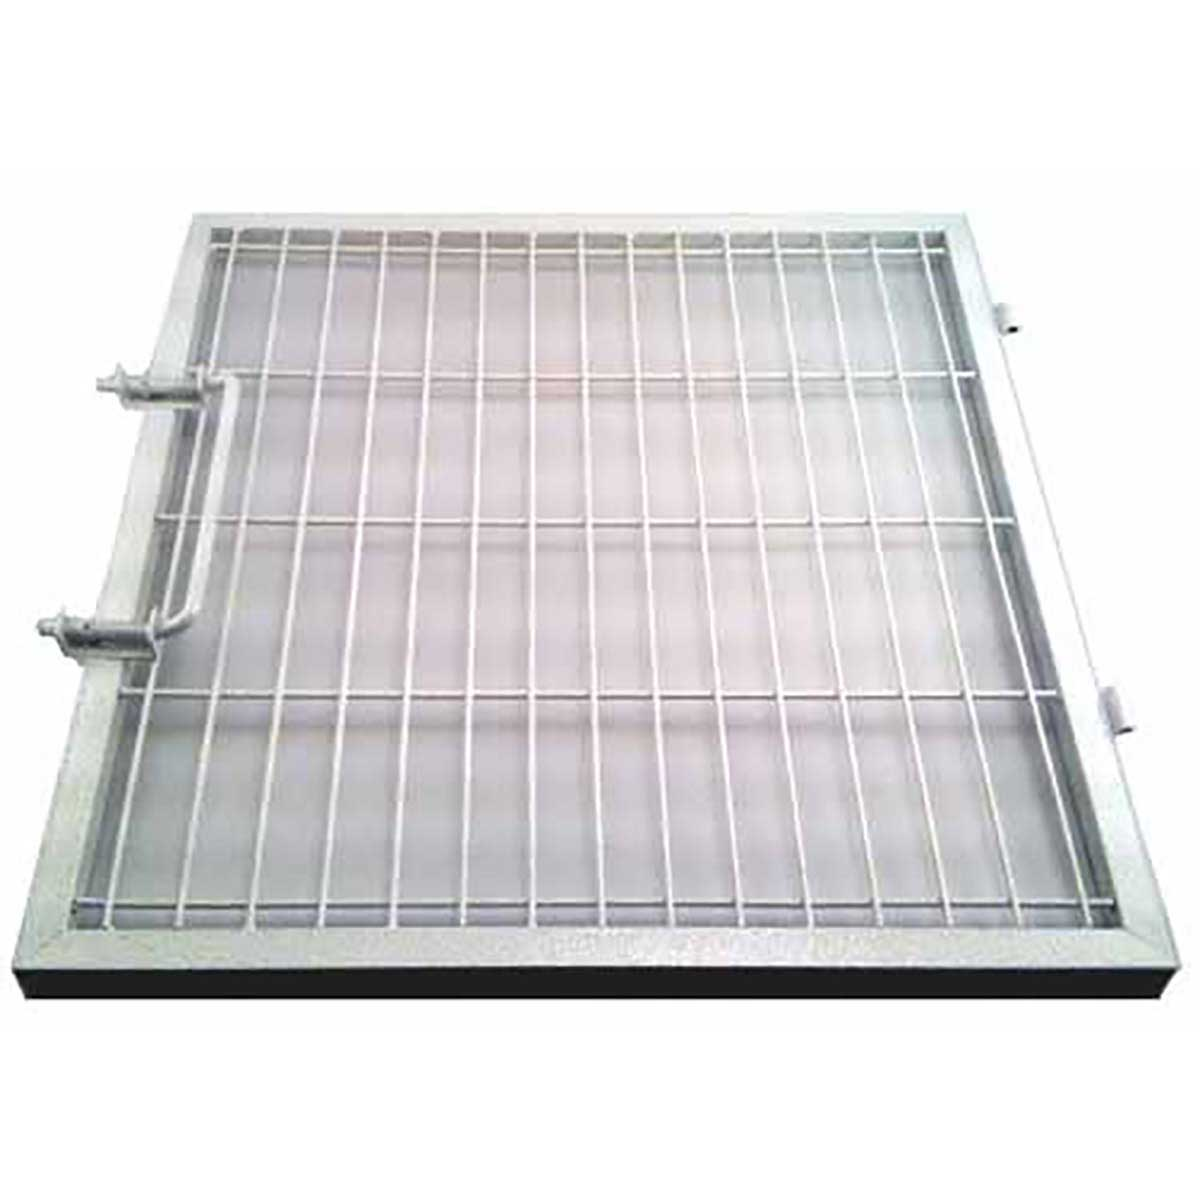 Replacement Door Assembly For Medium Modular Cage